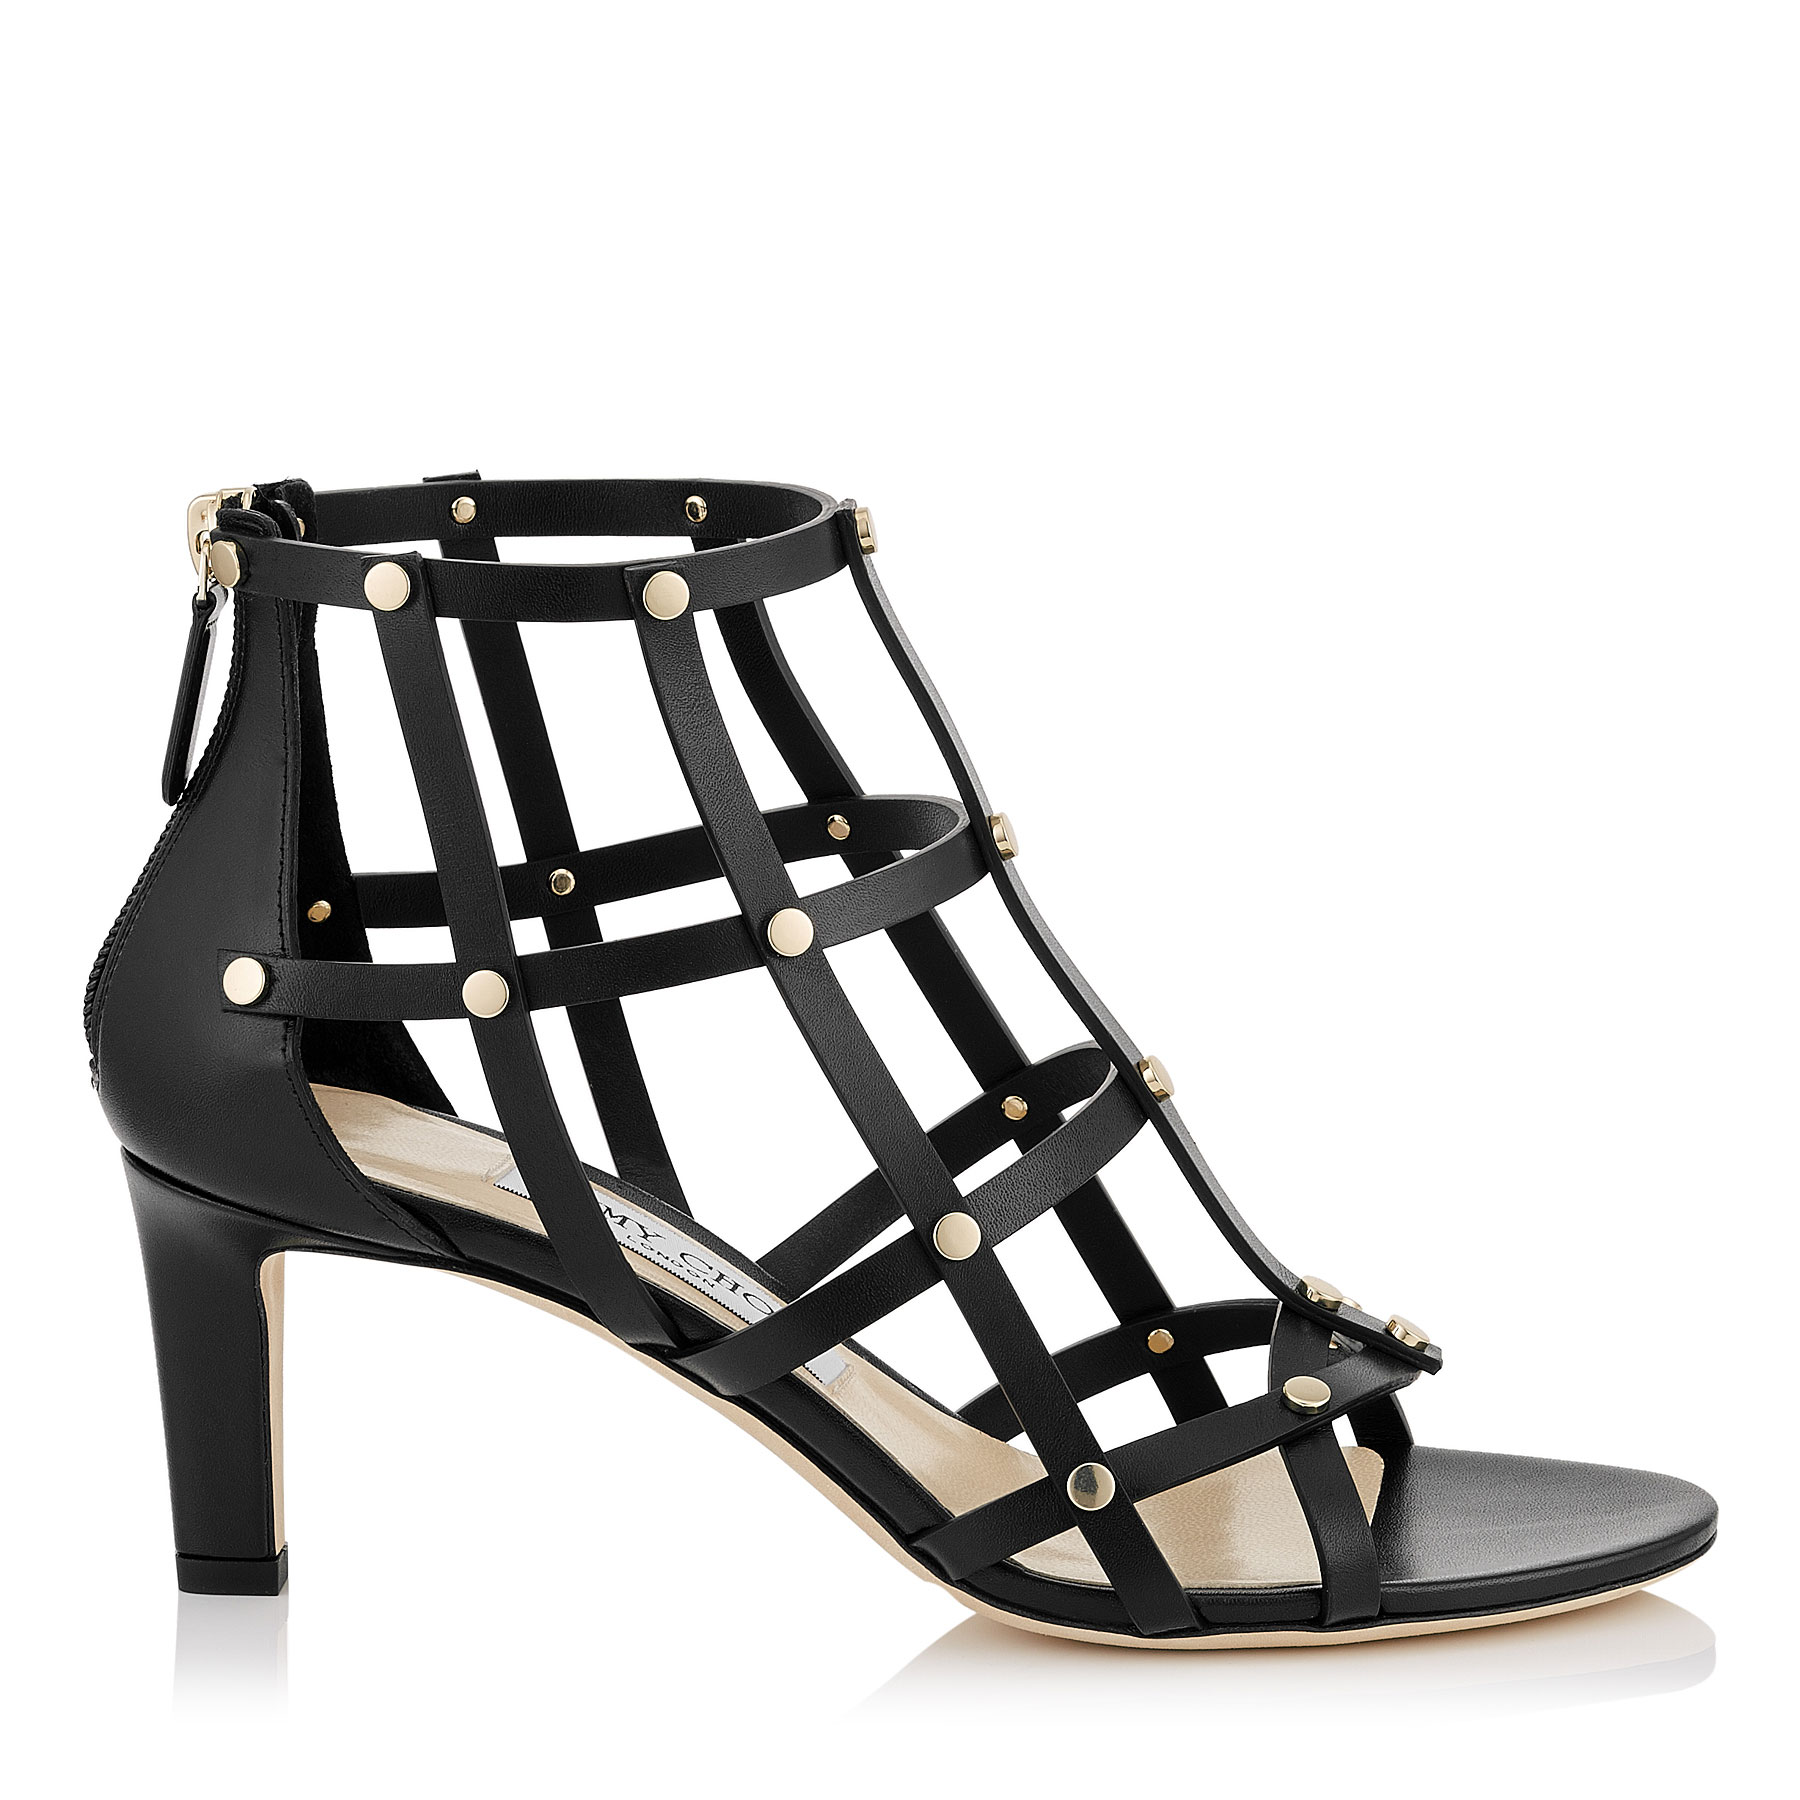 TINA 65 Black Calf Leather Sandals with Light Gold Studs